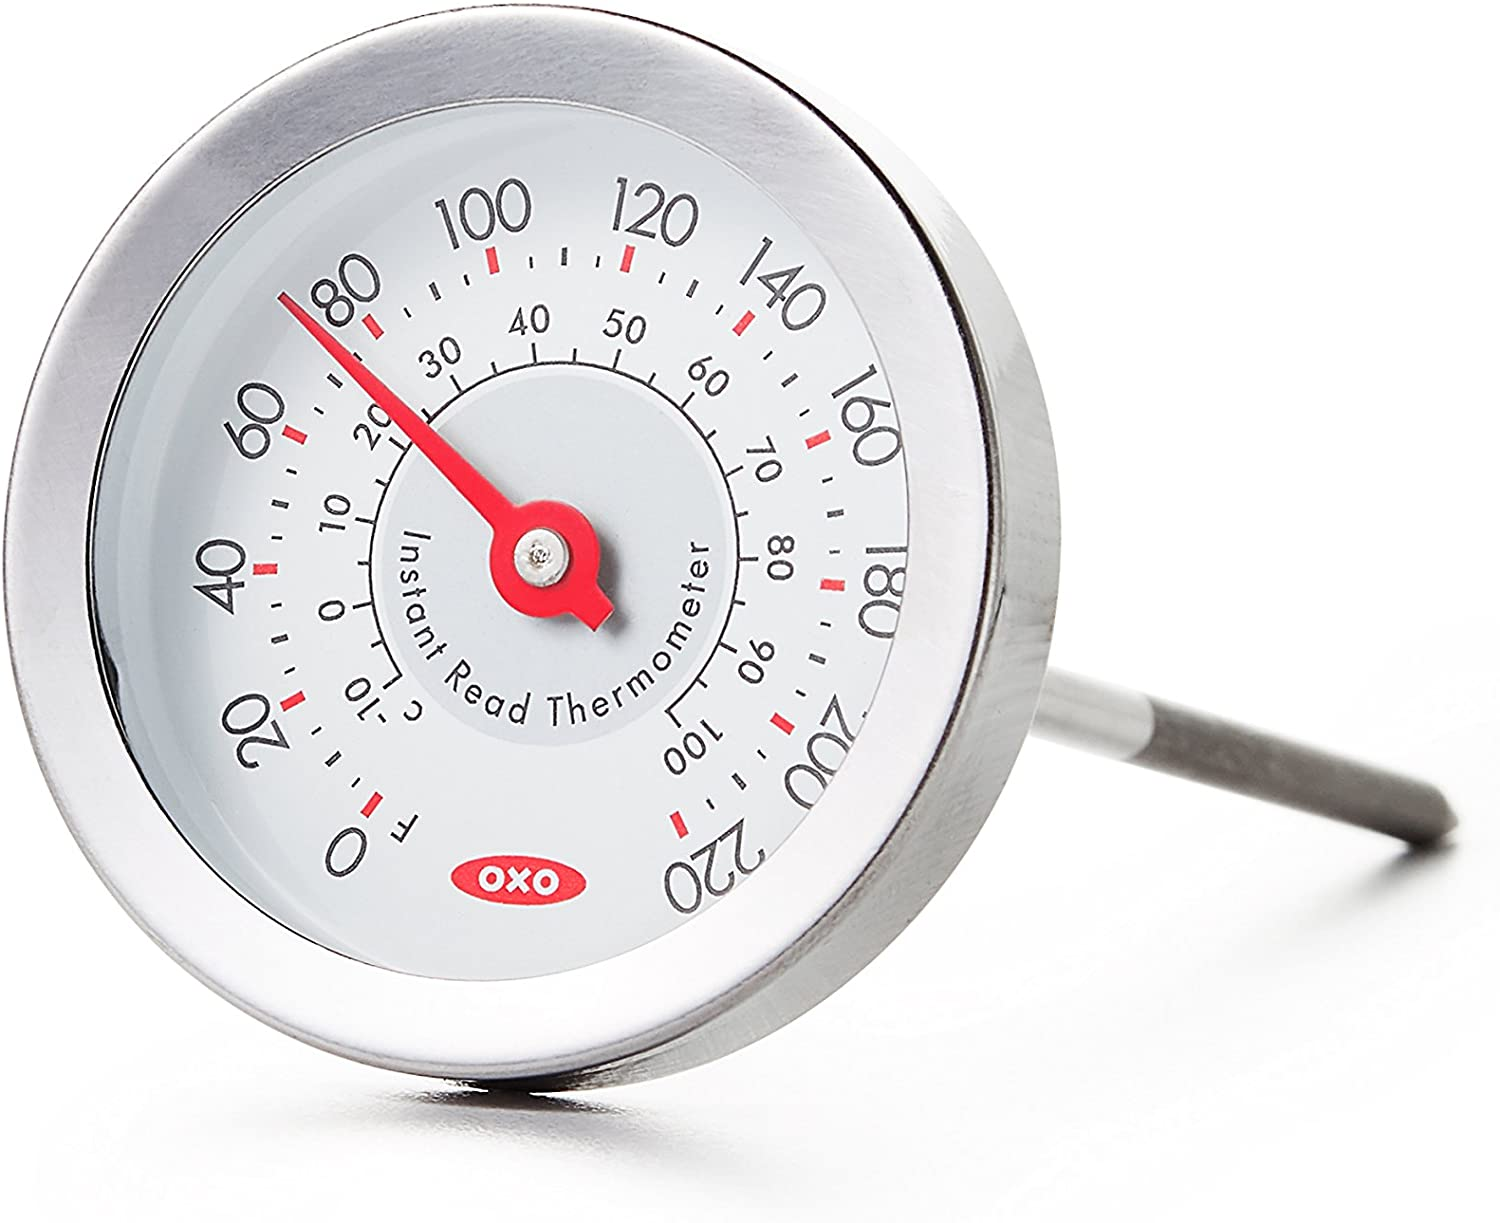 OXO Analog Instant Read Meat Thermometer